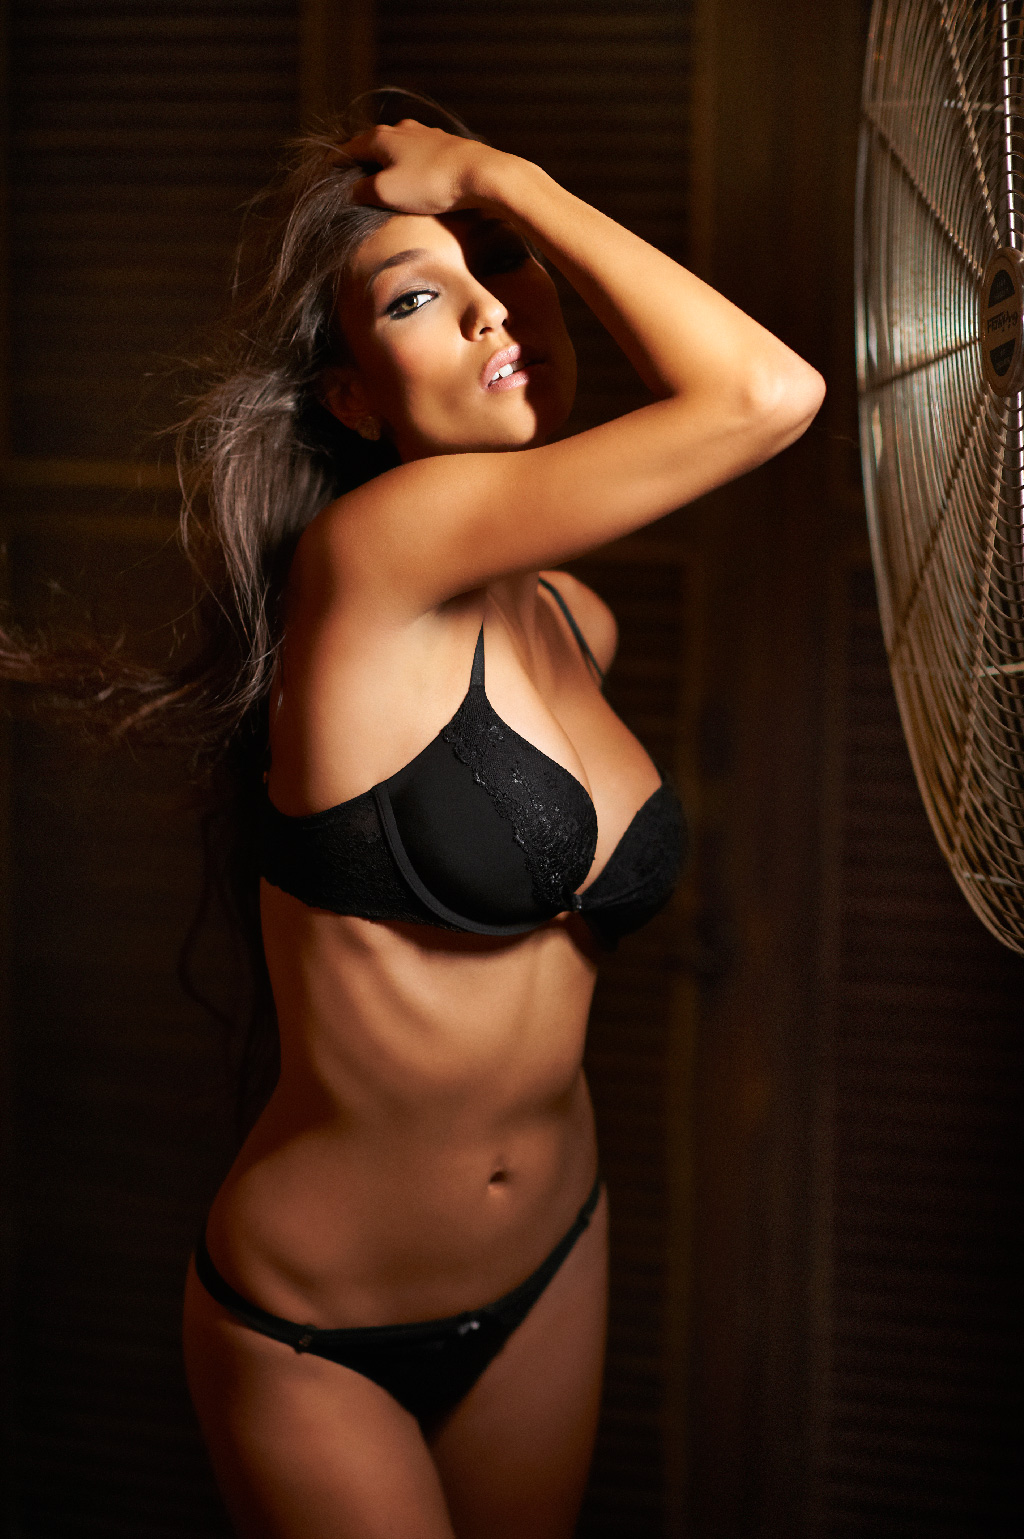 Creative Boudoir Shots using a Fan and Ice Light by Jerry Ghionis #4